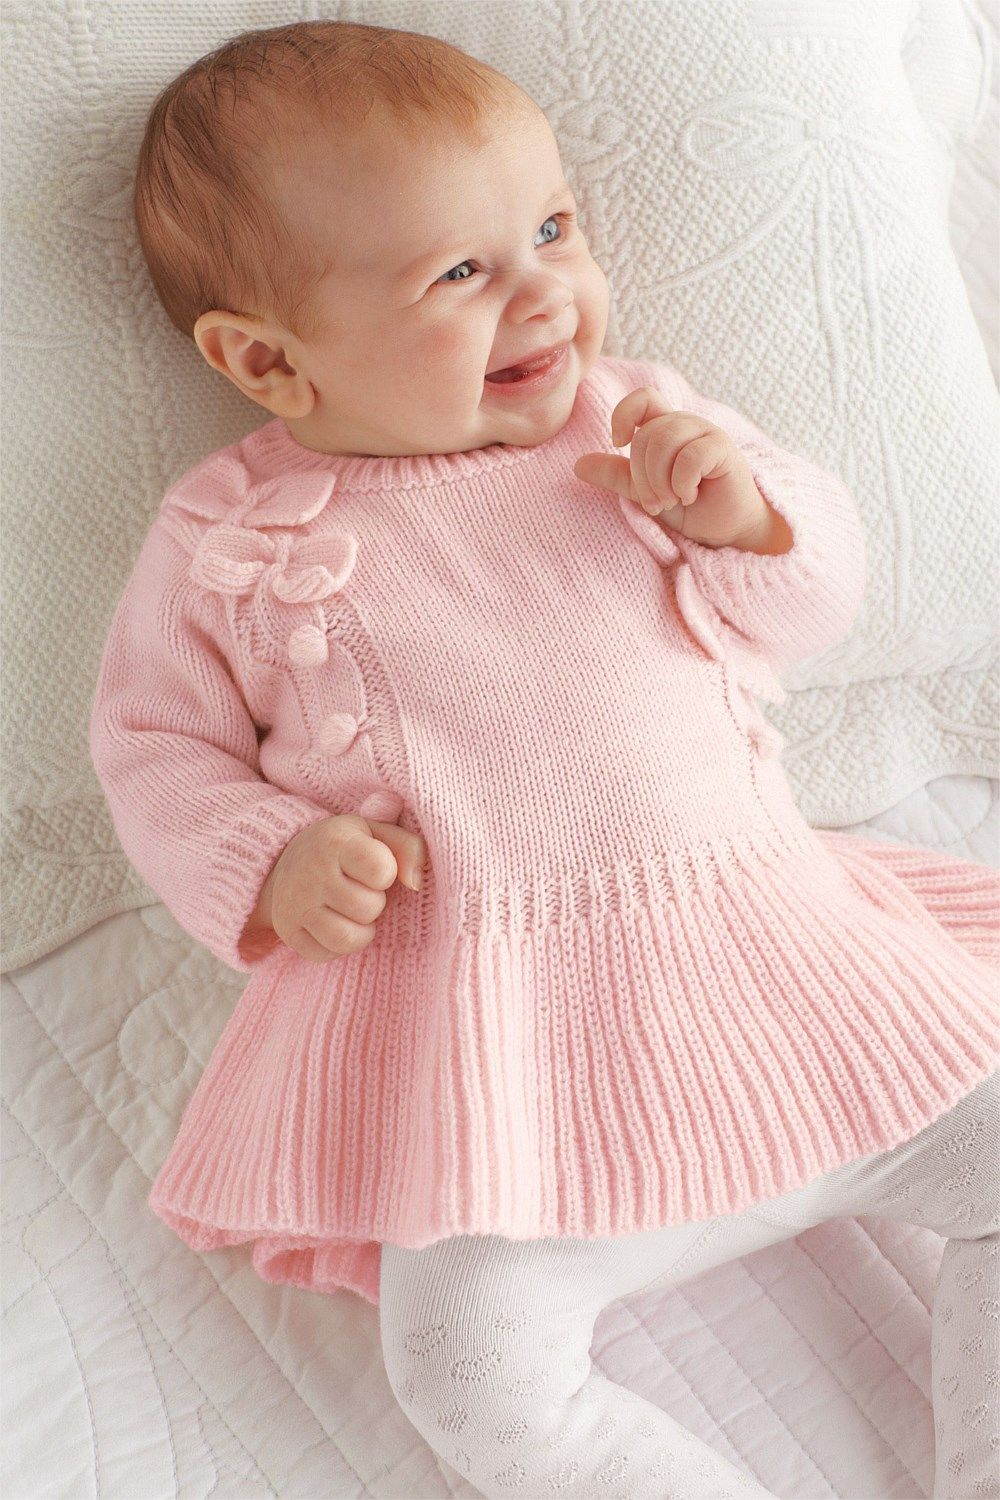 6d66bf1c8 Newborn Clothing - Baby Clothes and Infantwear - Next Knitted Dress ...